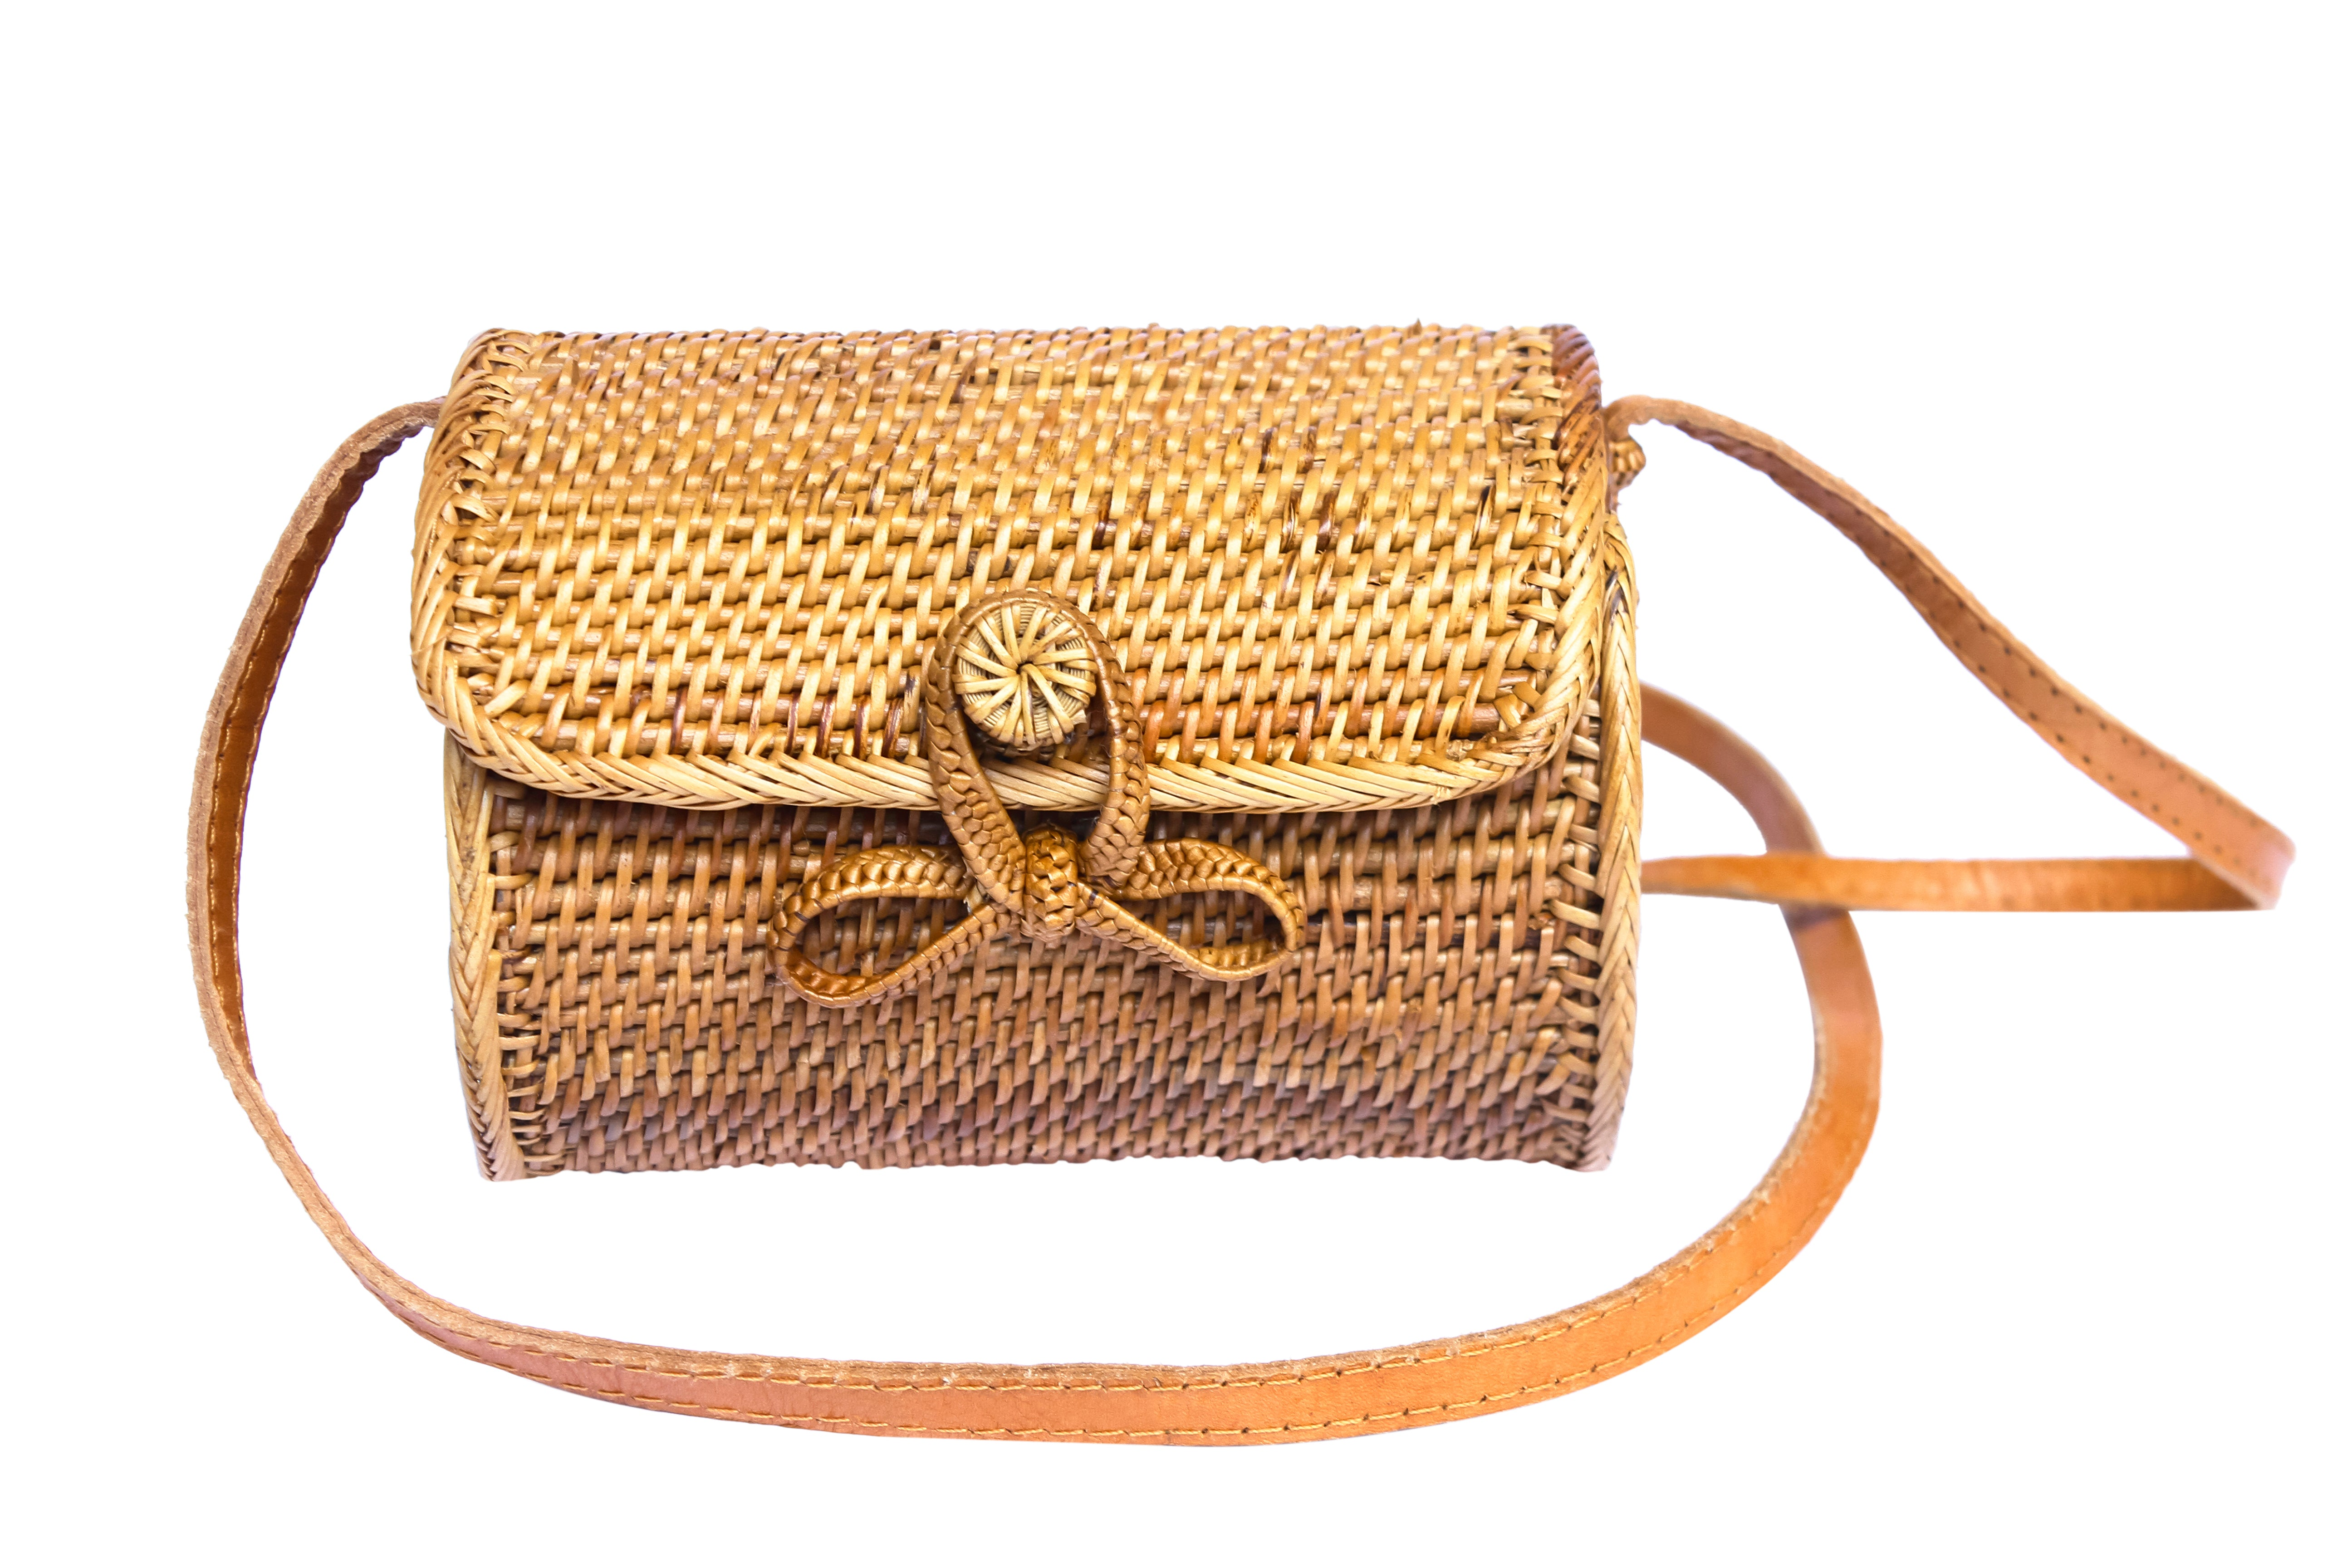 Barrel Basket Rattan Bag-Ata Bag